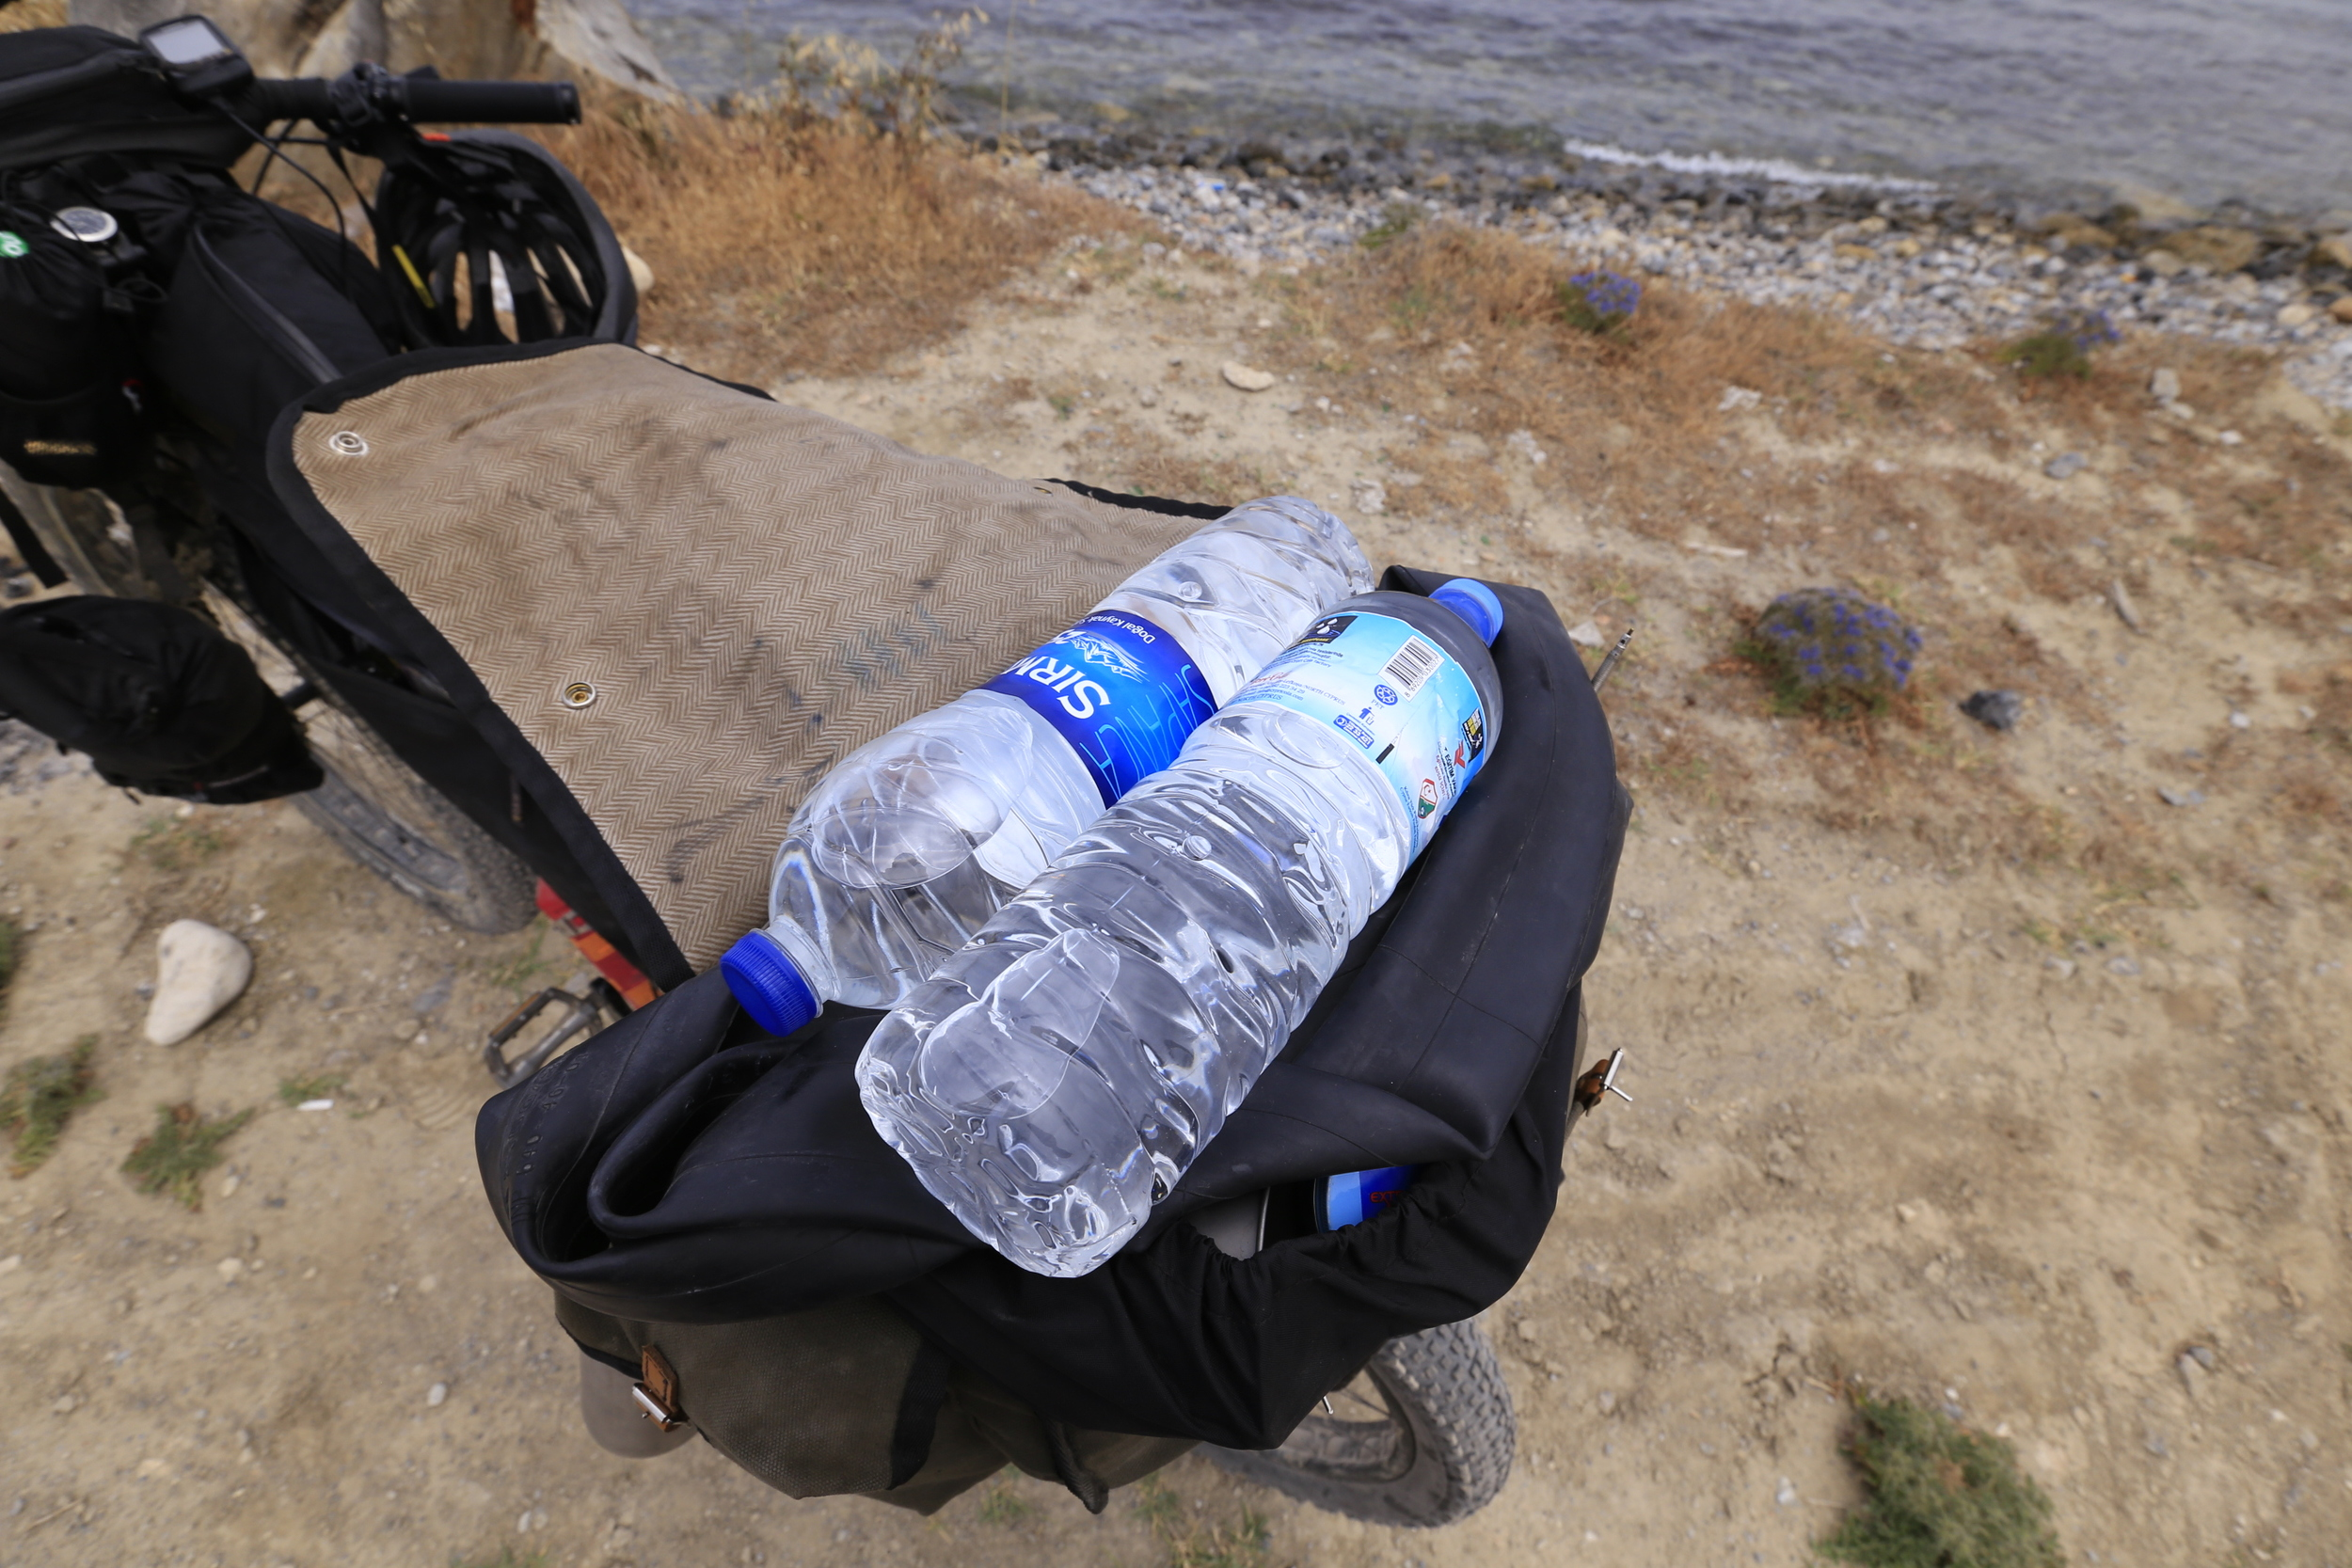 The Longflap's adjustable straps allowed me to carry a pair of additional two litre water bottles on top of all my gear.